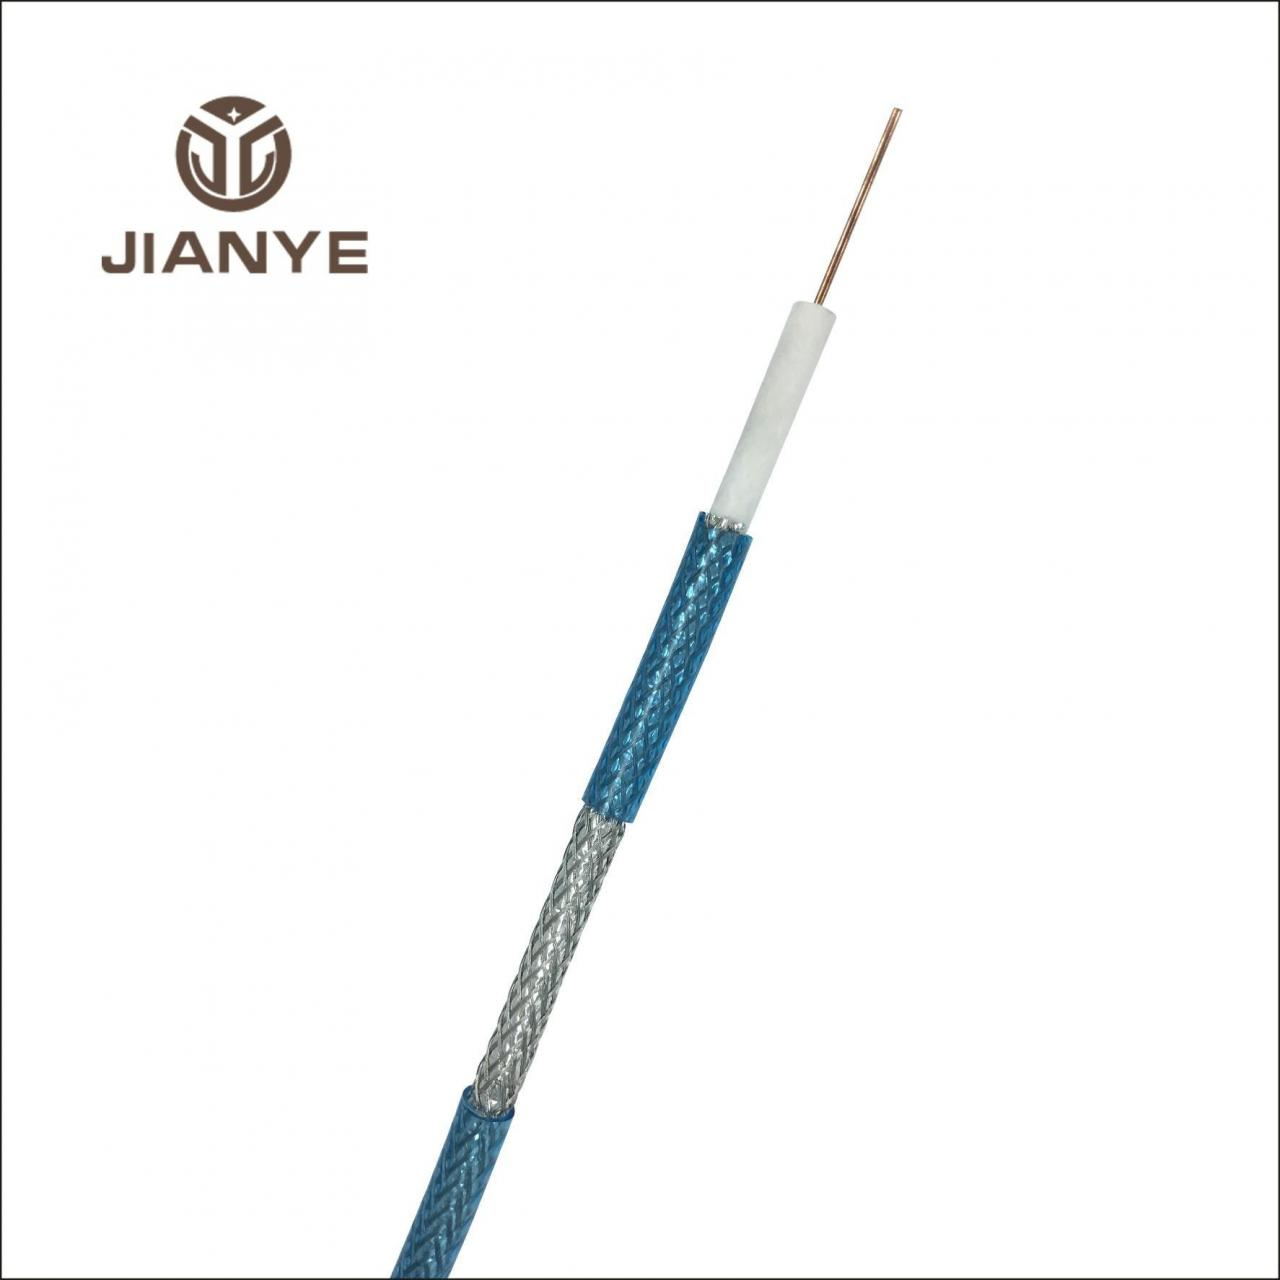 Coaxial Cable RG6 TRANSPARENT BLUE Coaxial Cable